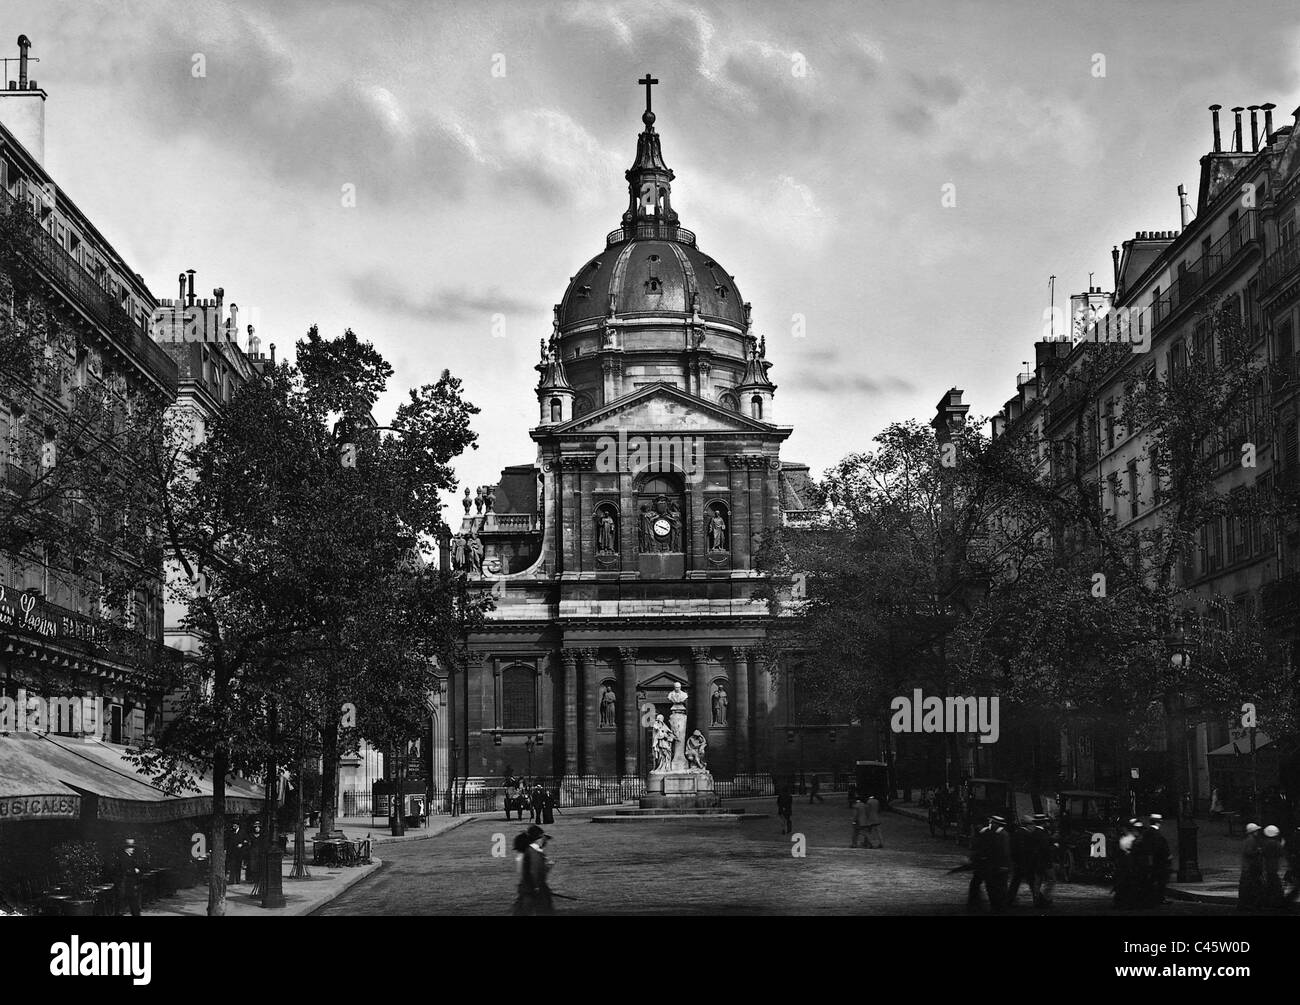 The church of the sorbonne university in paris stock photo for Sorbonne paris